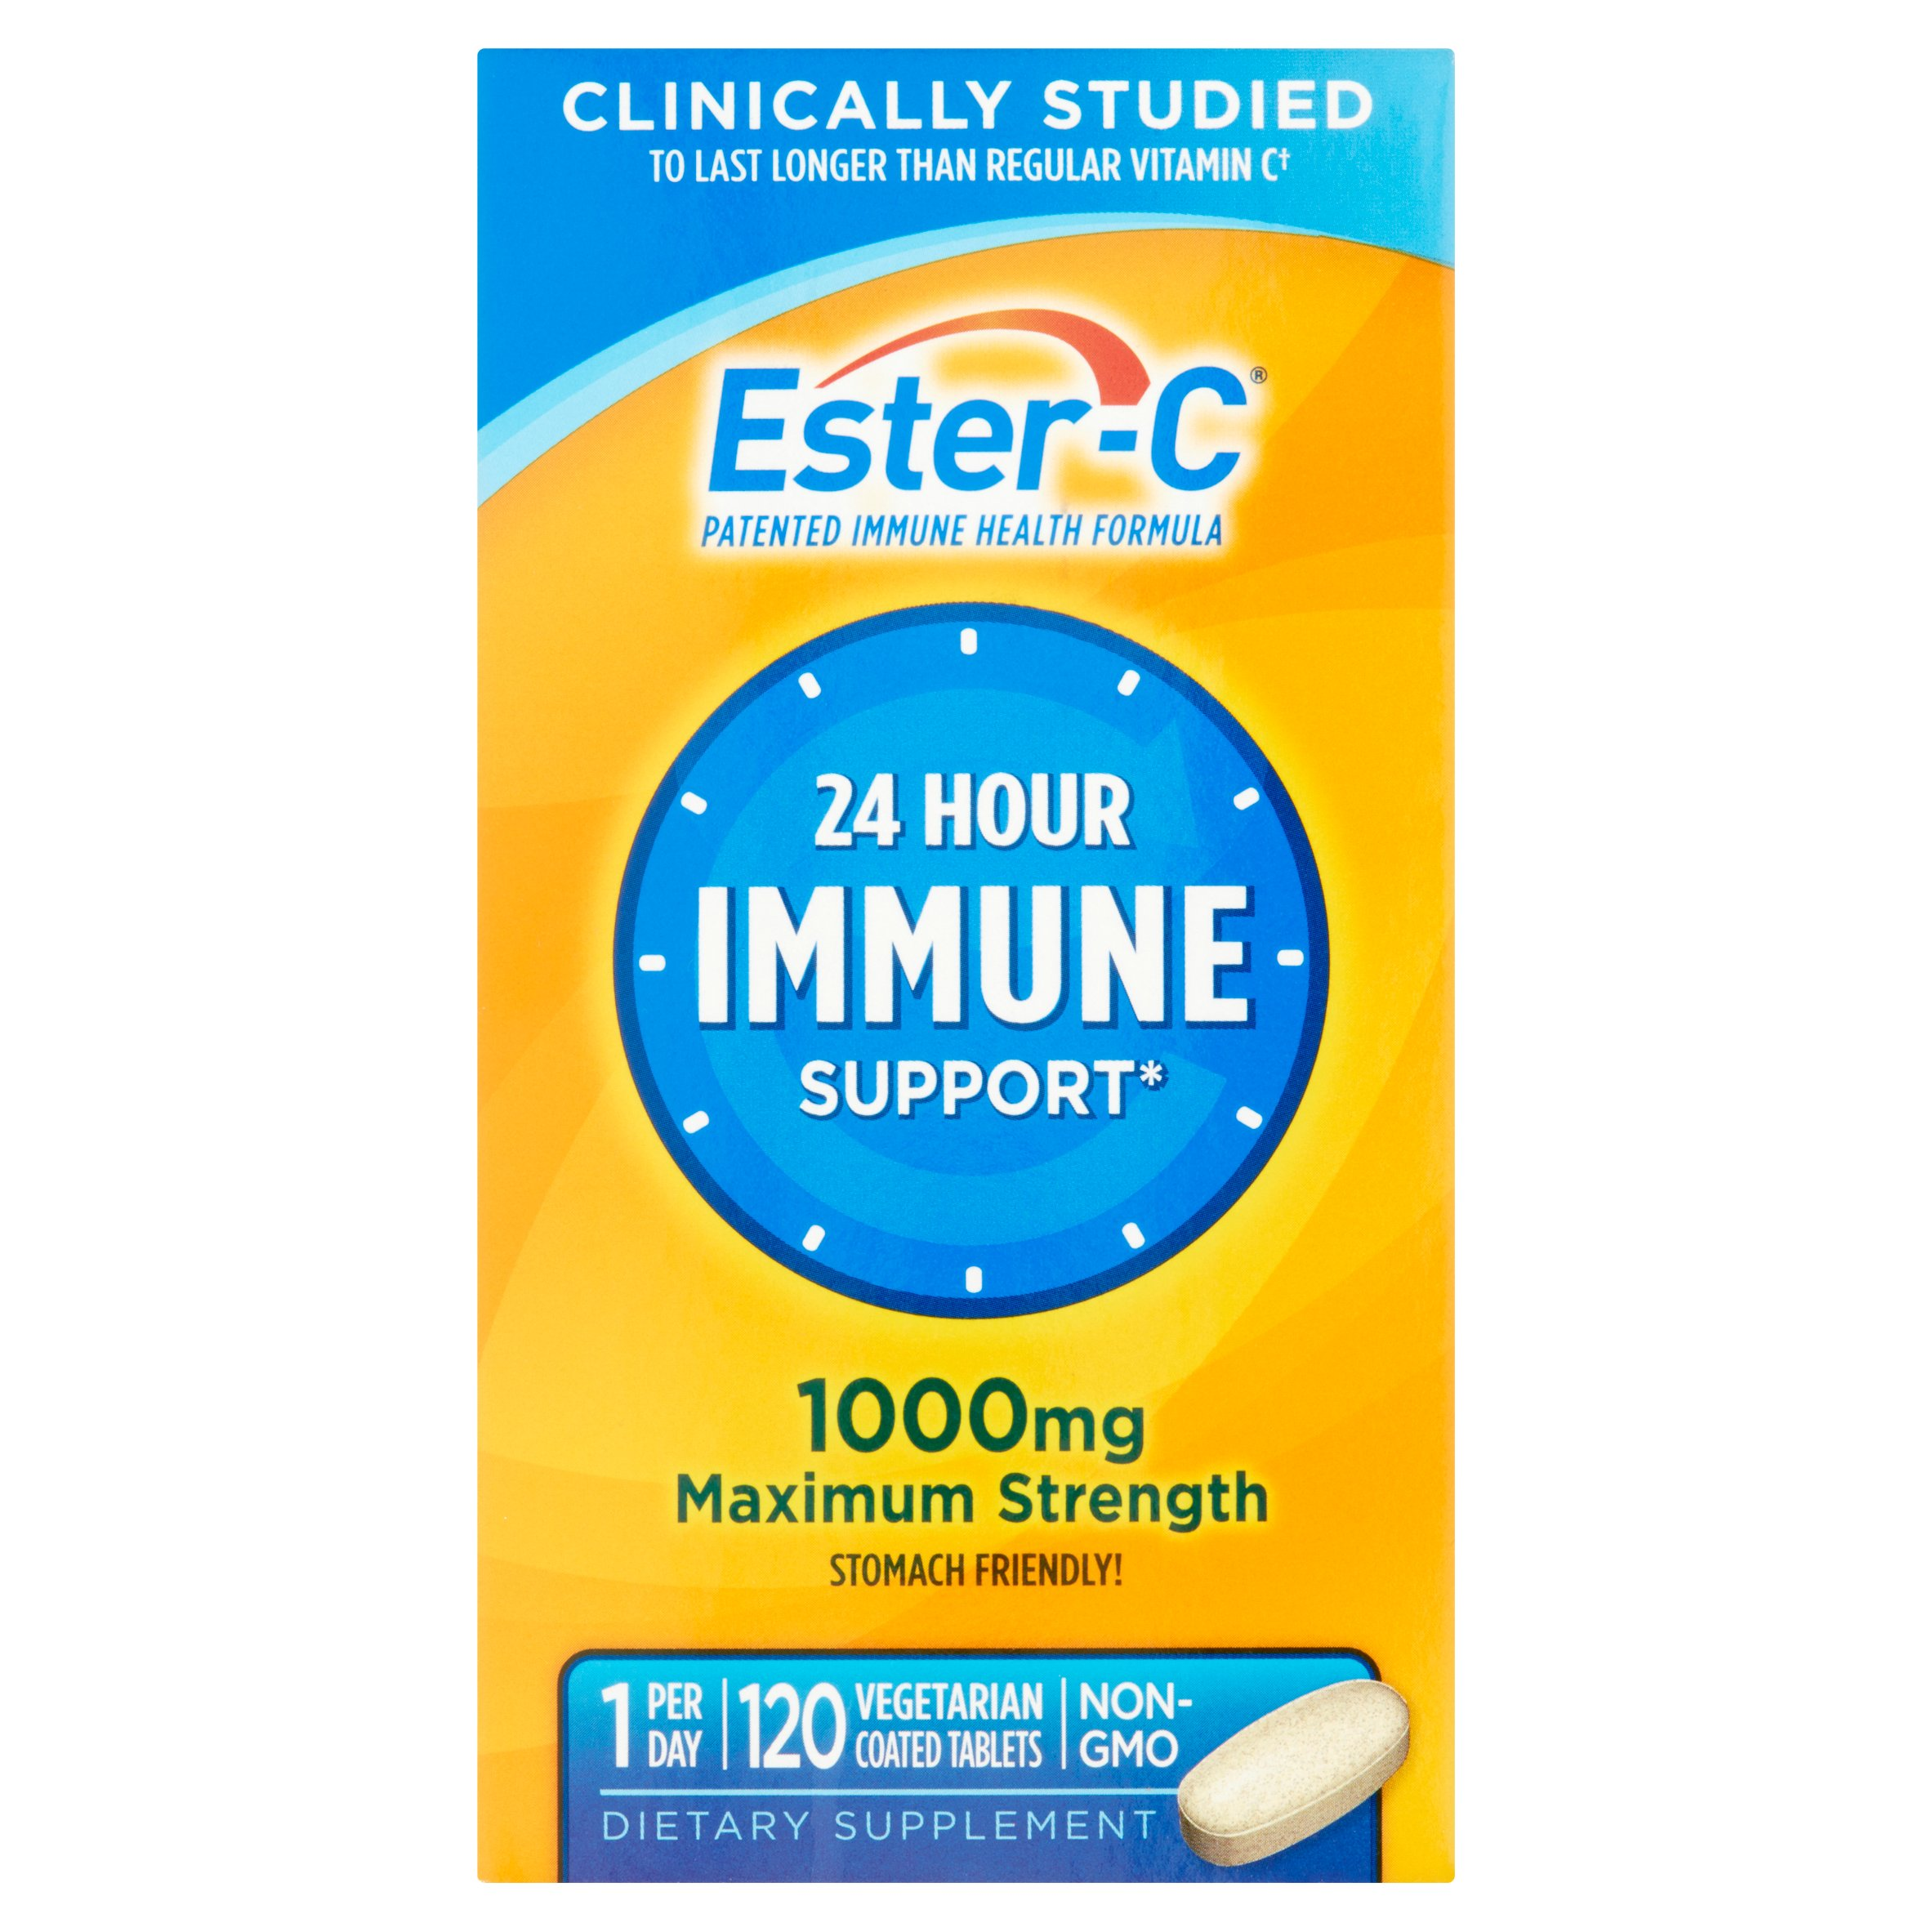 Ester-C The Better Vitamin C Vitamin C 1000 mg Vitamin Supplement 120 ct